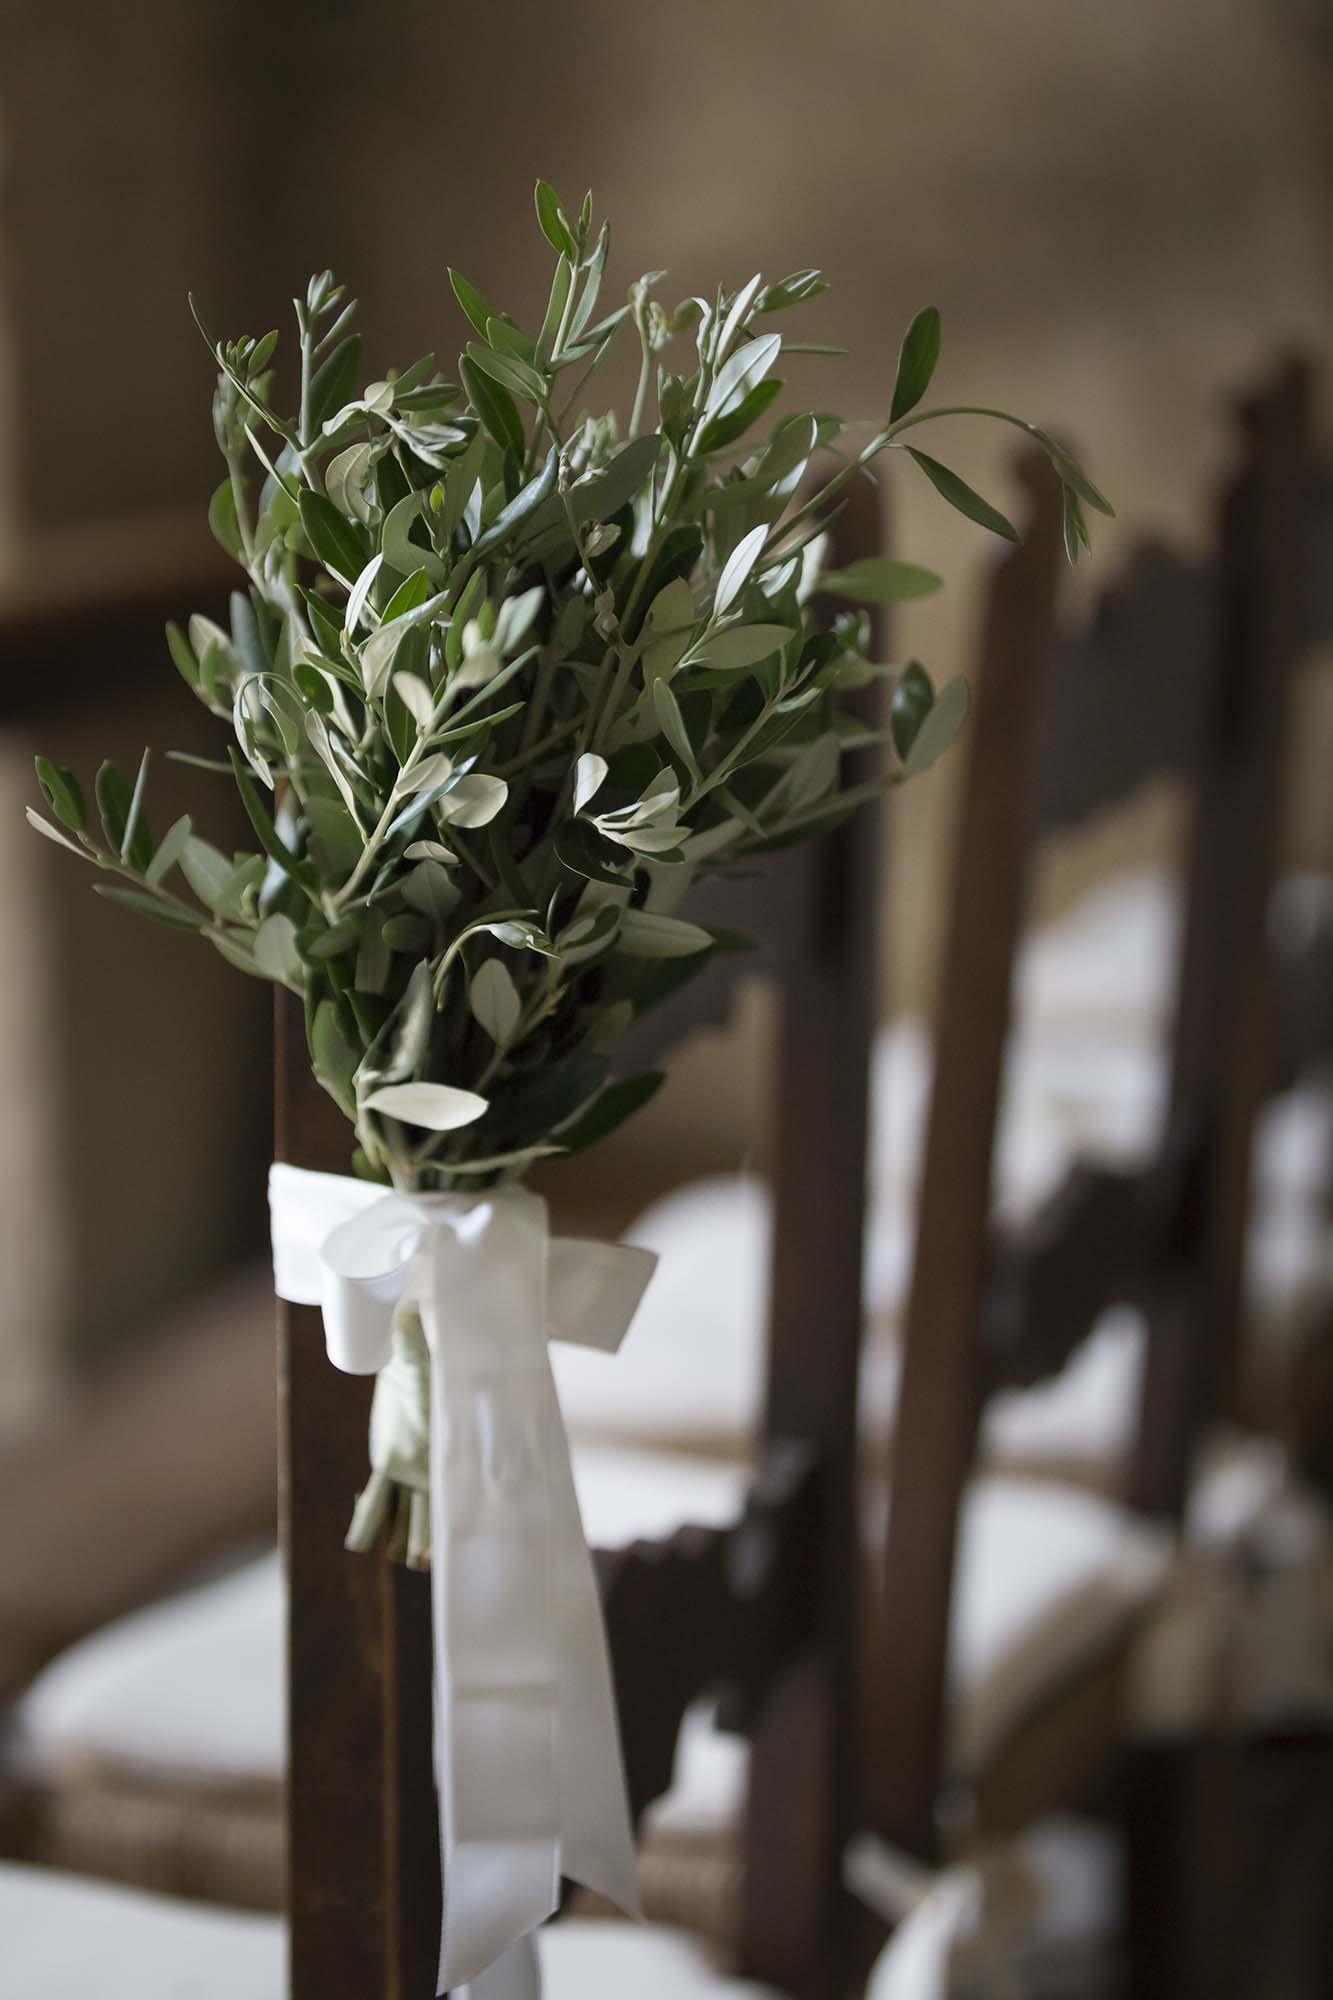 Orvieto Destination Wedding Decorations.jpg